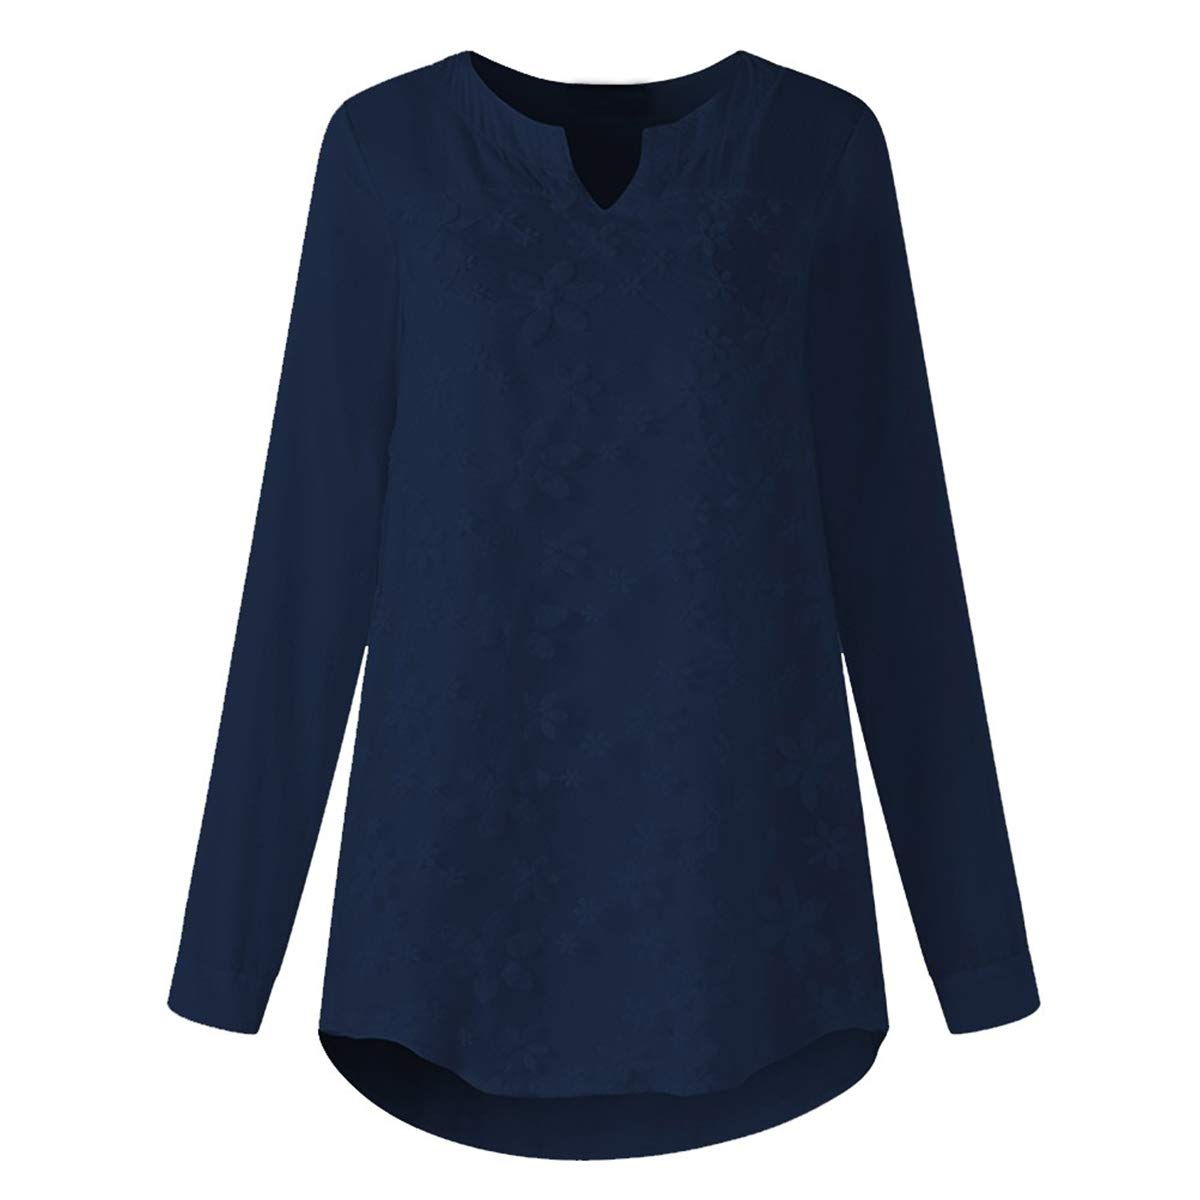 bluee Floral Embroidery Lace Shirt Plus Size Long Sleeve V Neck Women's Blouse